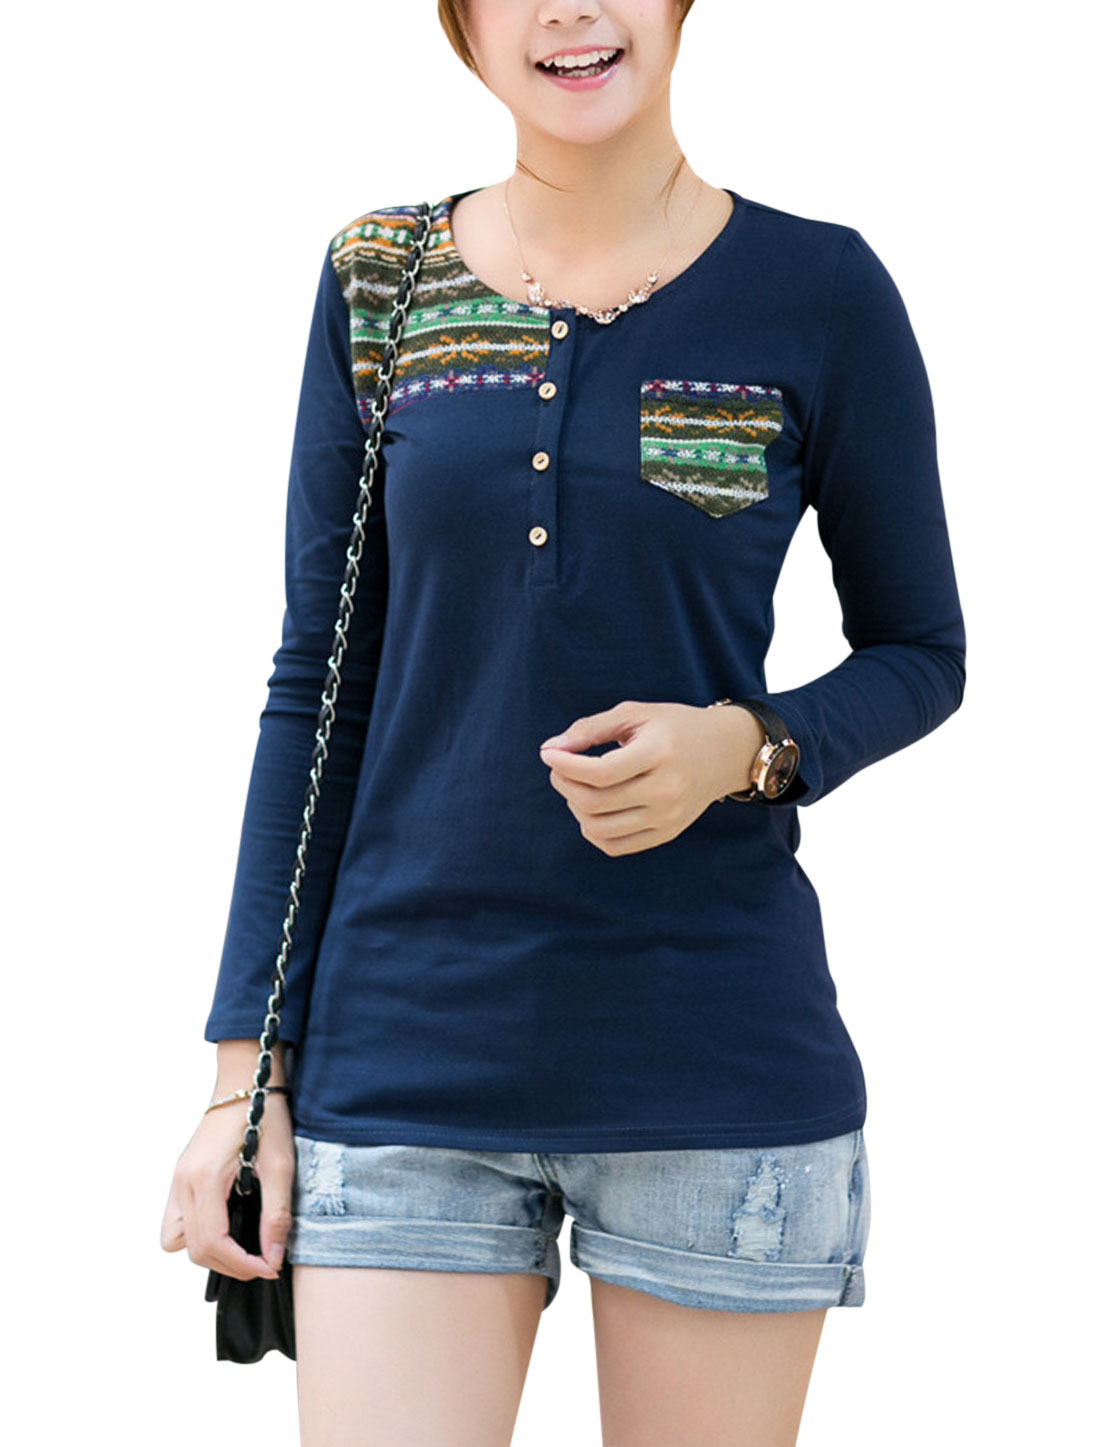 Lady One Pocket Chest Panel Geometric Pattern Casual Henley Shirt Navy Blue XS